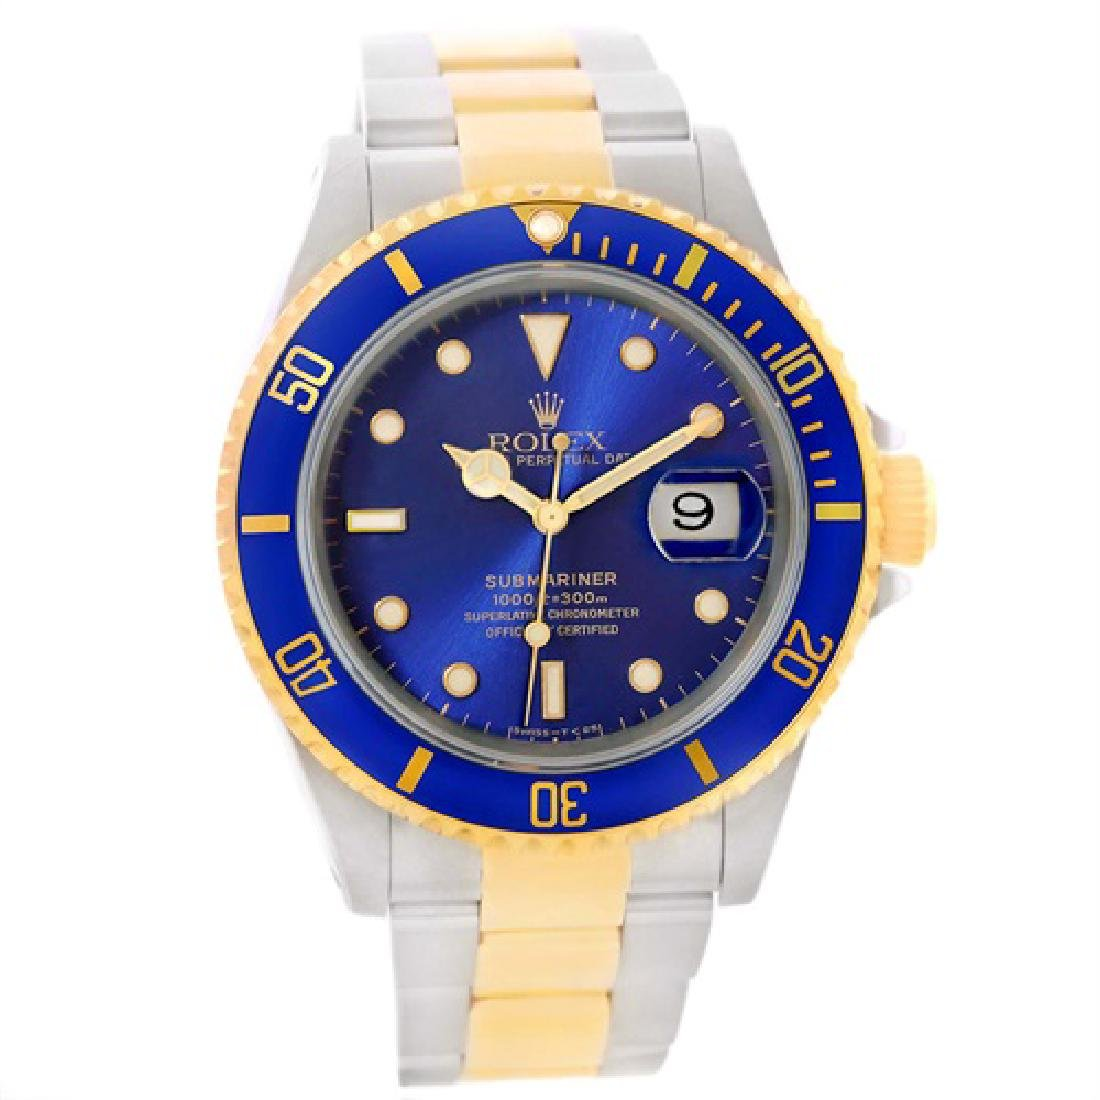 Rolex Submariner Steel Blue Dial 18K Yellow Gold Mens